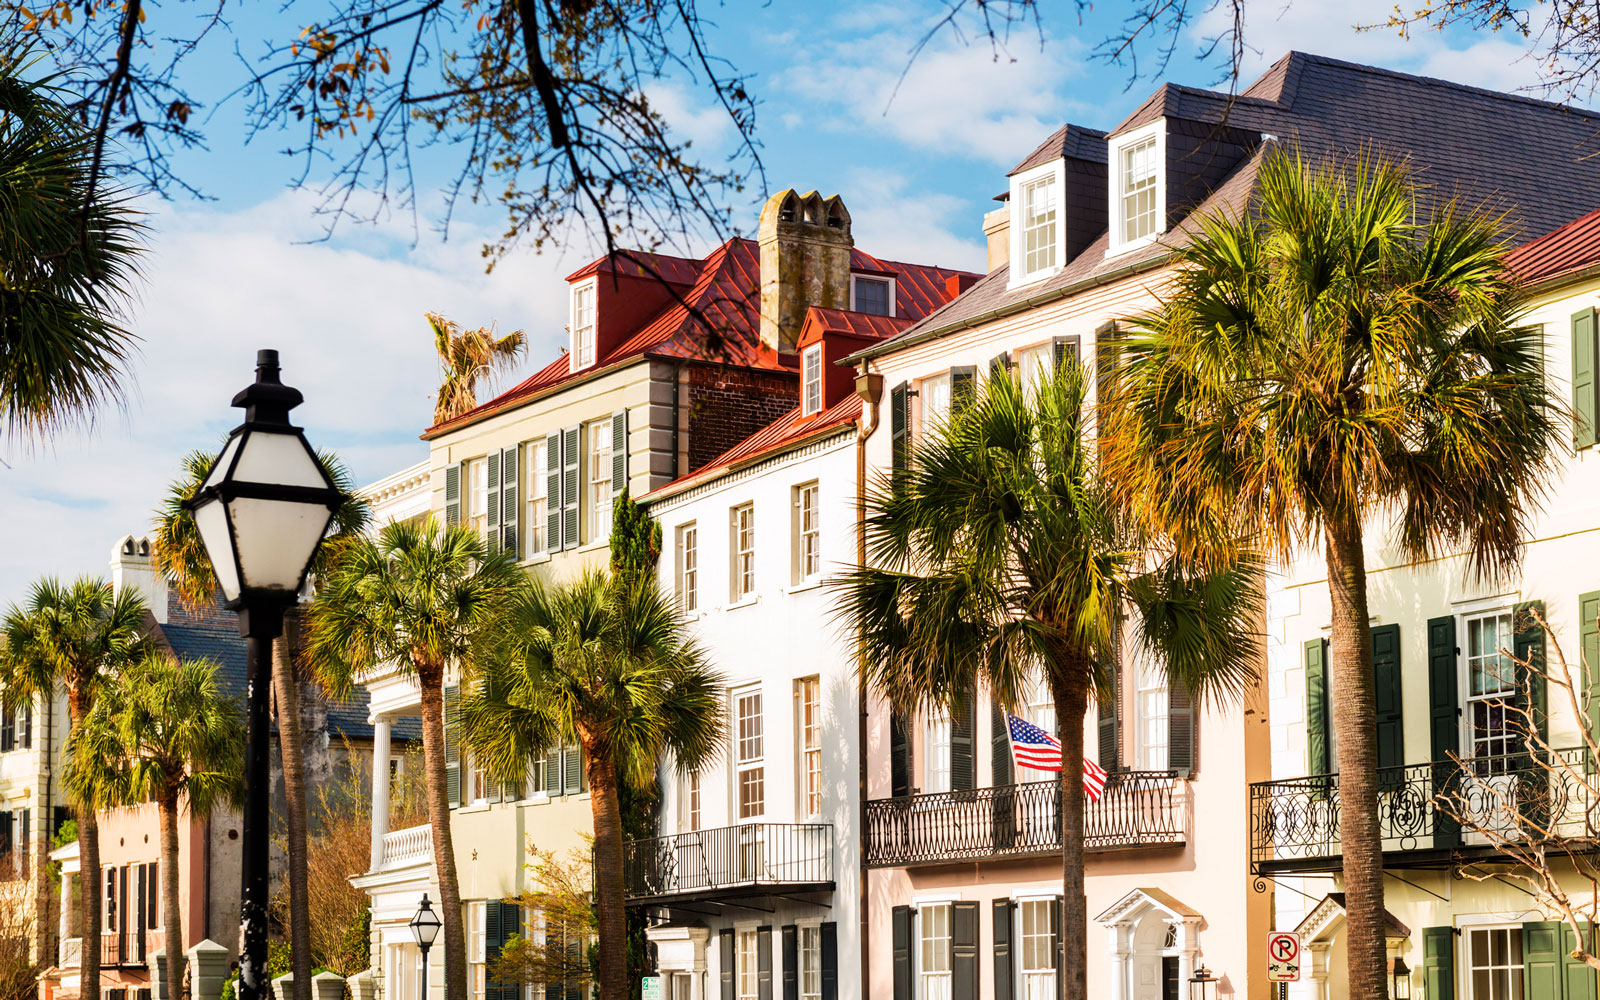 How to Experience Charleston, According to a Lifelong Traveler